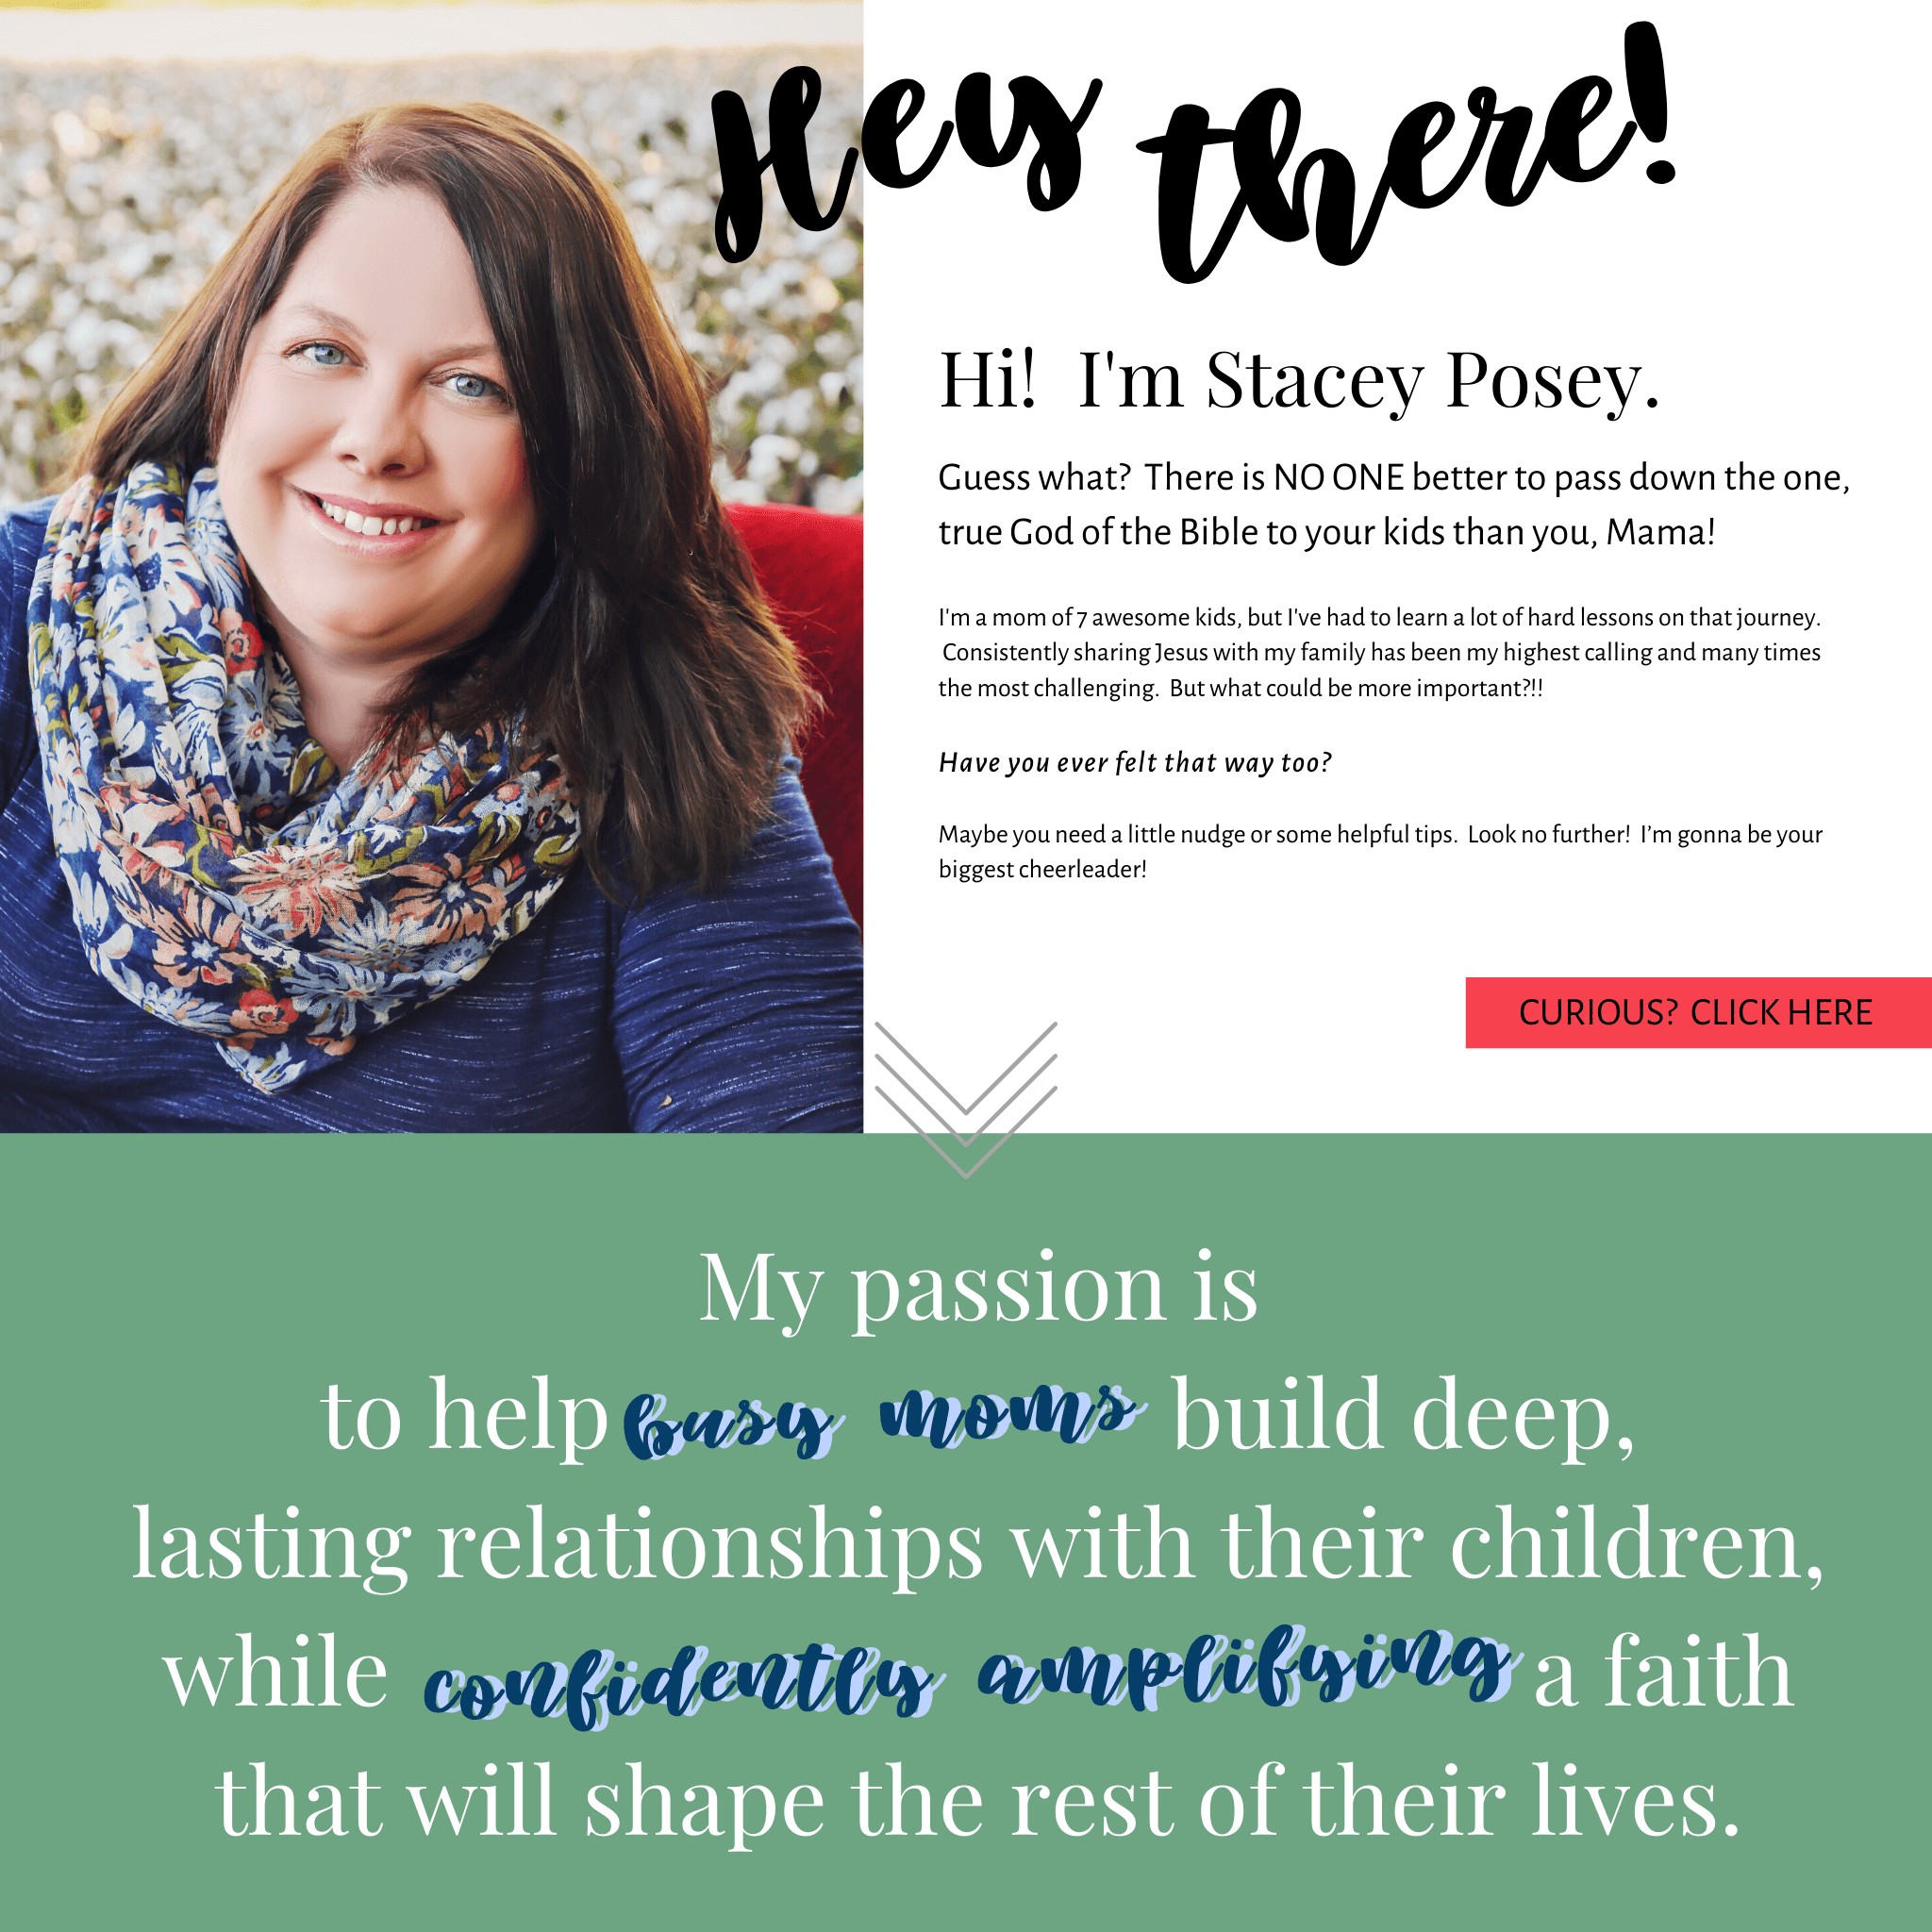 My passion is to help busy moms build deep, lasting relationships with their children, while confidently amplifying a faith that will shape the rest of their lives.